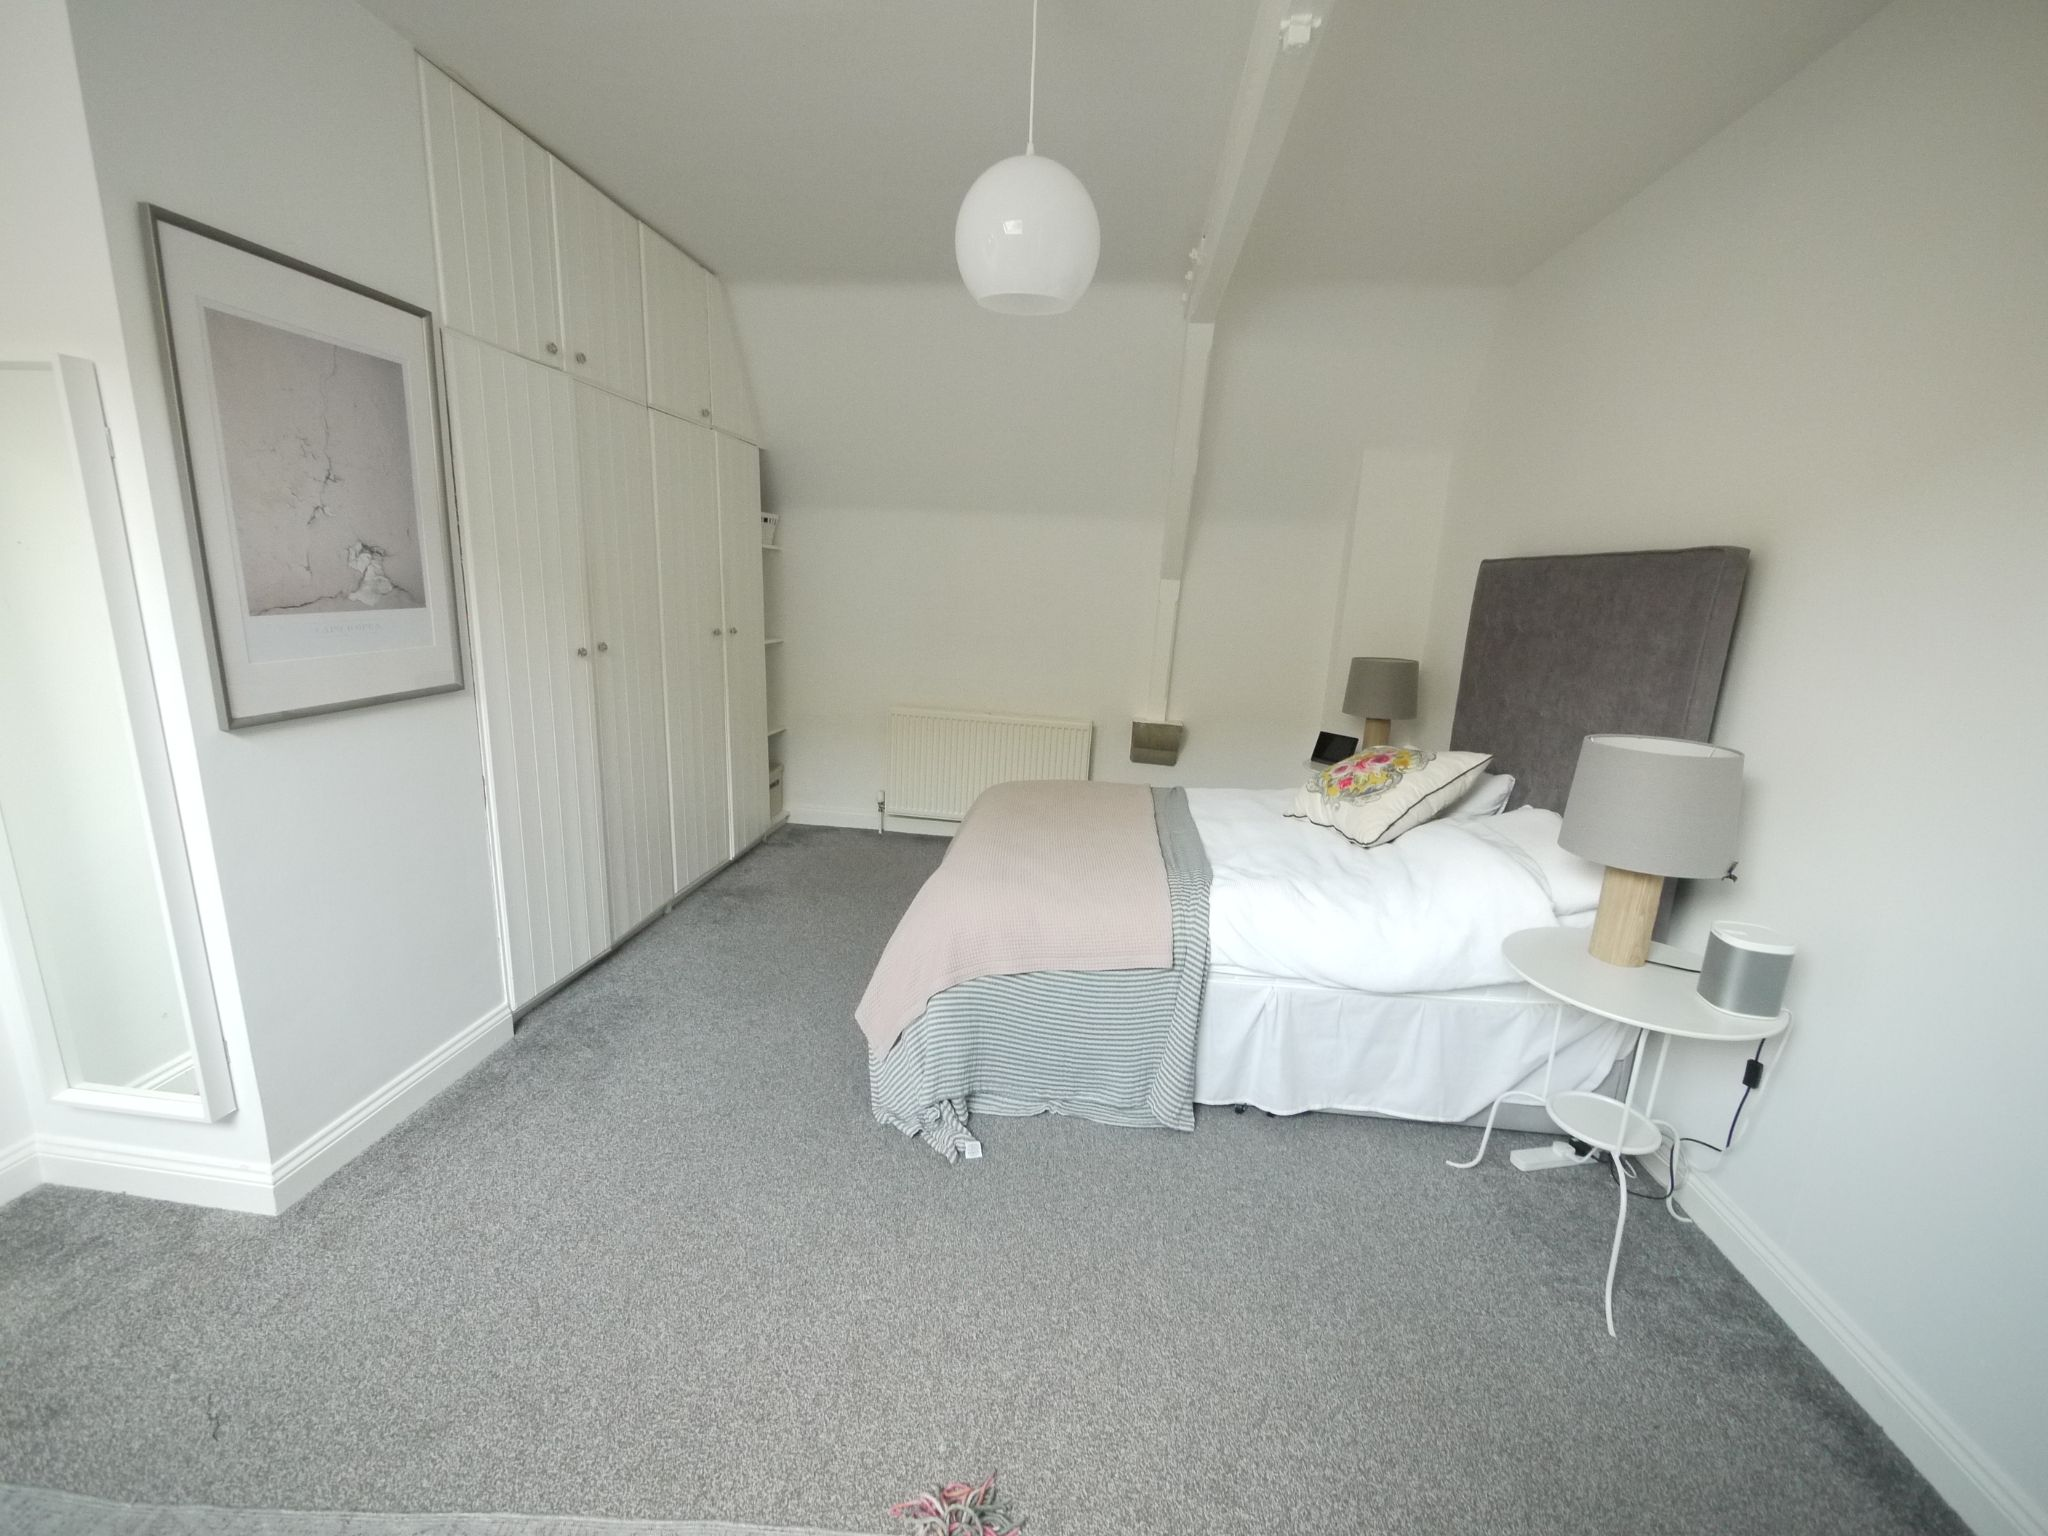 2 bedroom end terraced house SSTC in Cleckheaton - Bedroom 1.